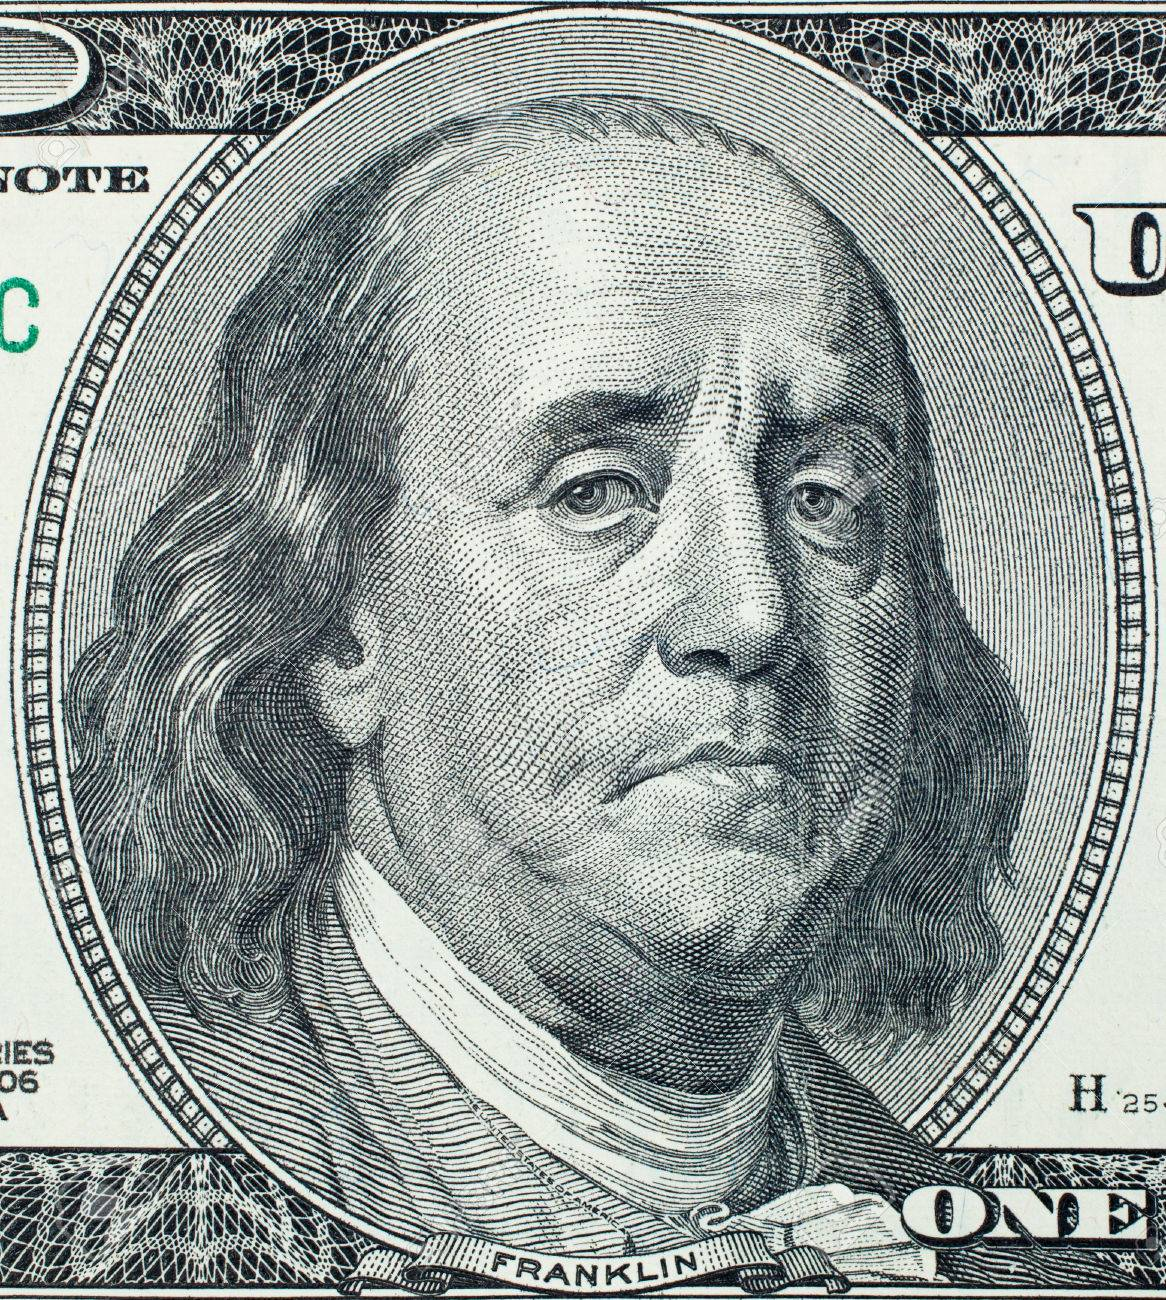 Sad president benjamin franklin portrait on 100 us dollar bill stock sad president benjamin franklin portrait on 100 us dollar bill stock photo 39815910 biocorpaavc Images